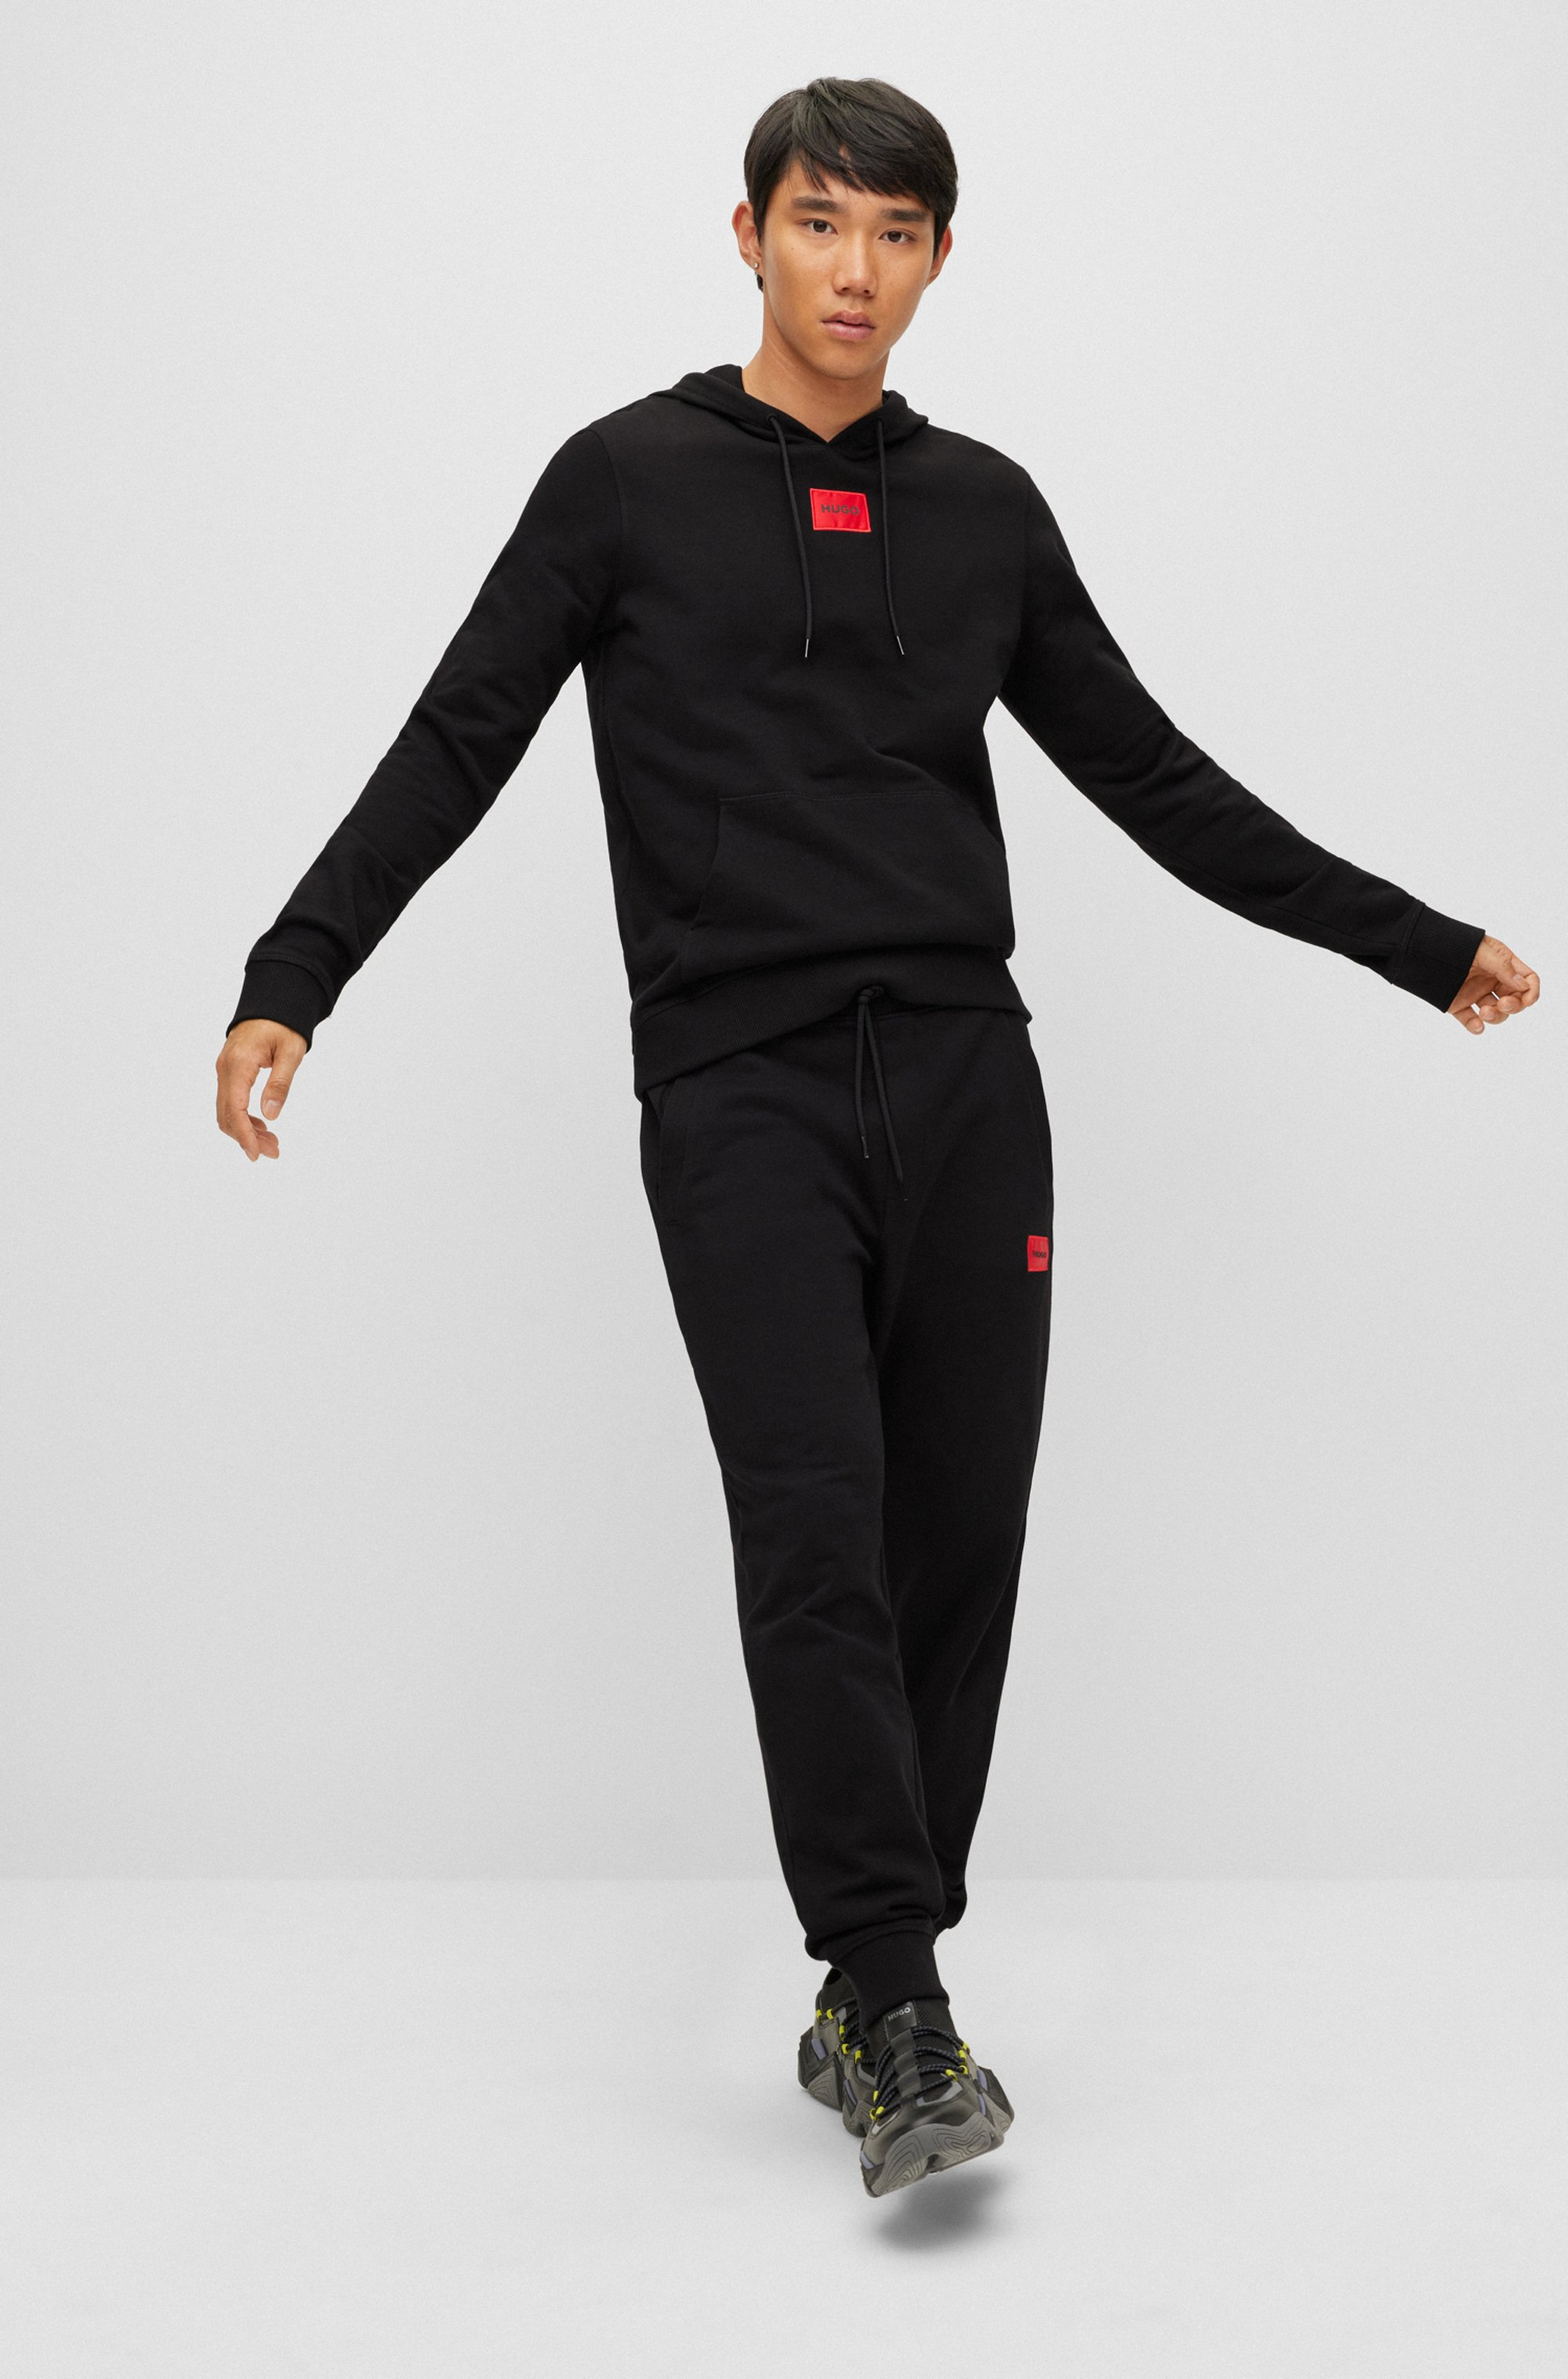 Cotton tracksuit bottoms with red logo patch